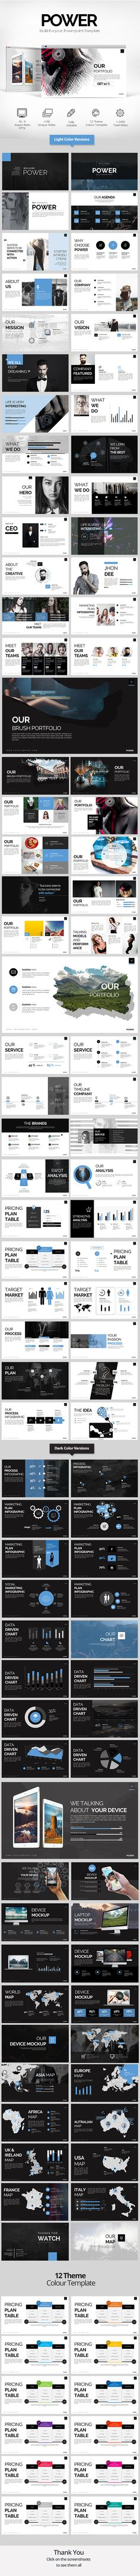 Buy Power Keynote Templates by Jhon_D_Atom on GraphicRiver. Power Keynote Presentation template is perfect for your impressive style presentations and also flexible to corporate. Presentation Design Template, Ppt Design, Presentation Layout, Slide Design, Presentation Slides, Business Presentation, Layout Design, Graphic Design, Portfolio Presentation